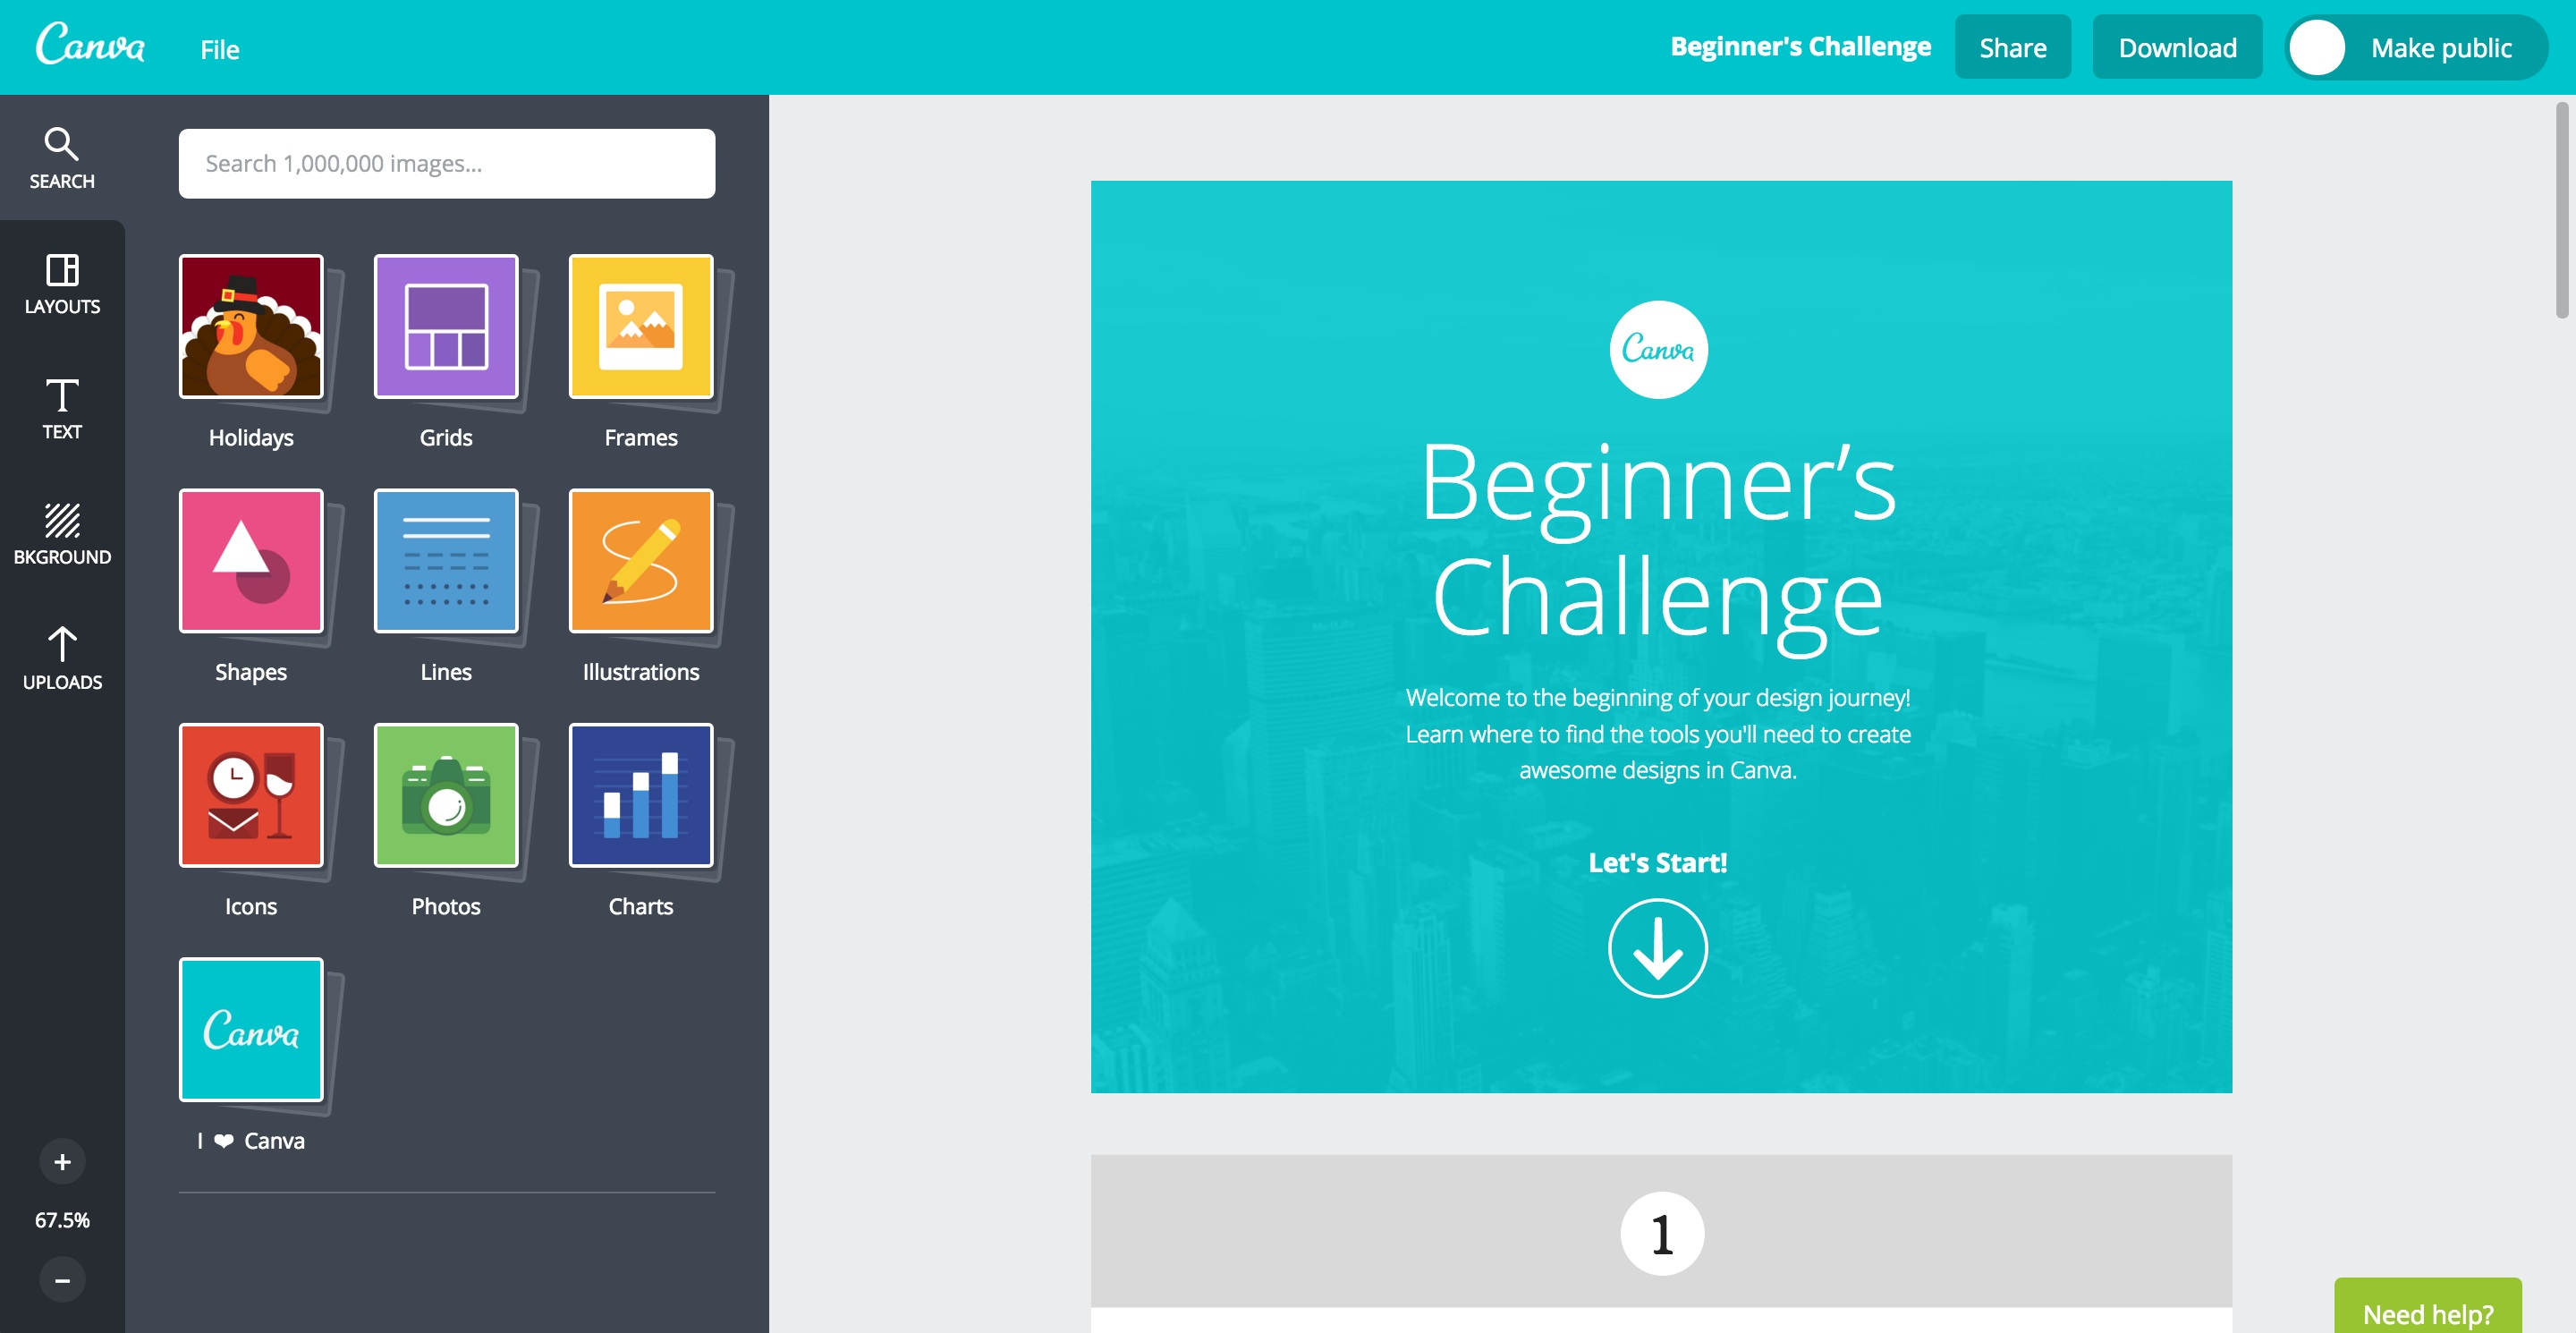 canva user onboarding step 5